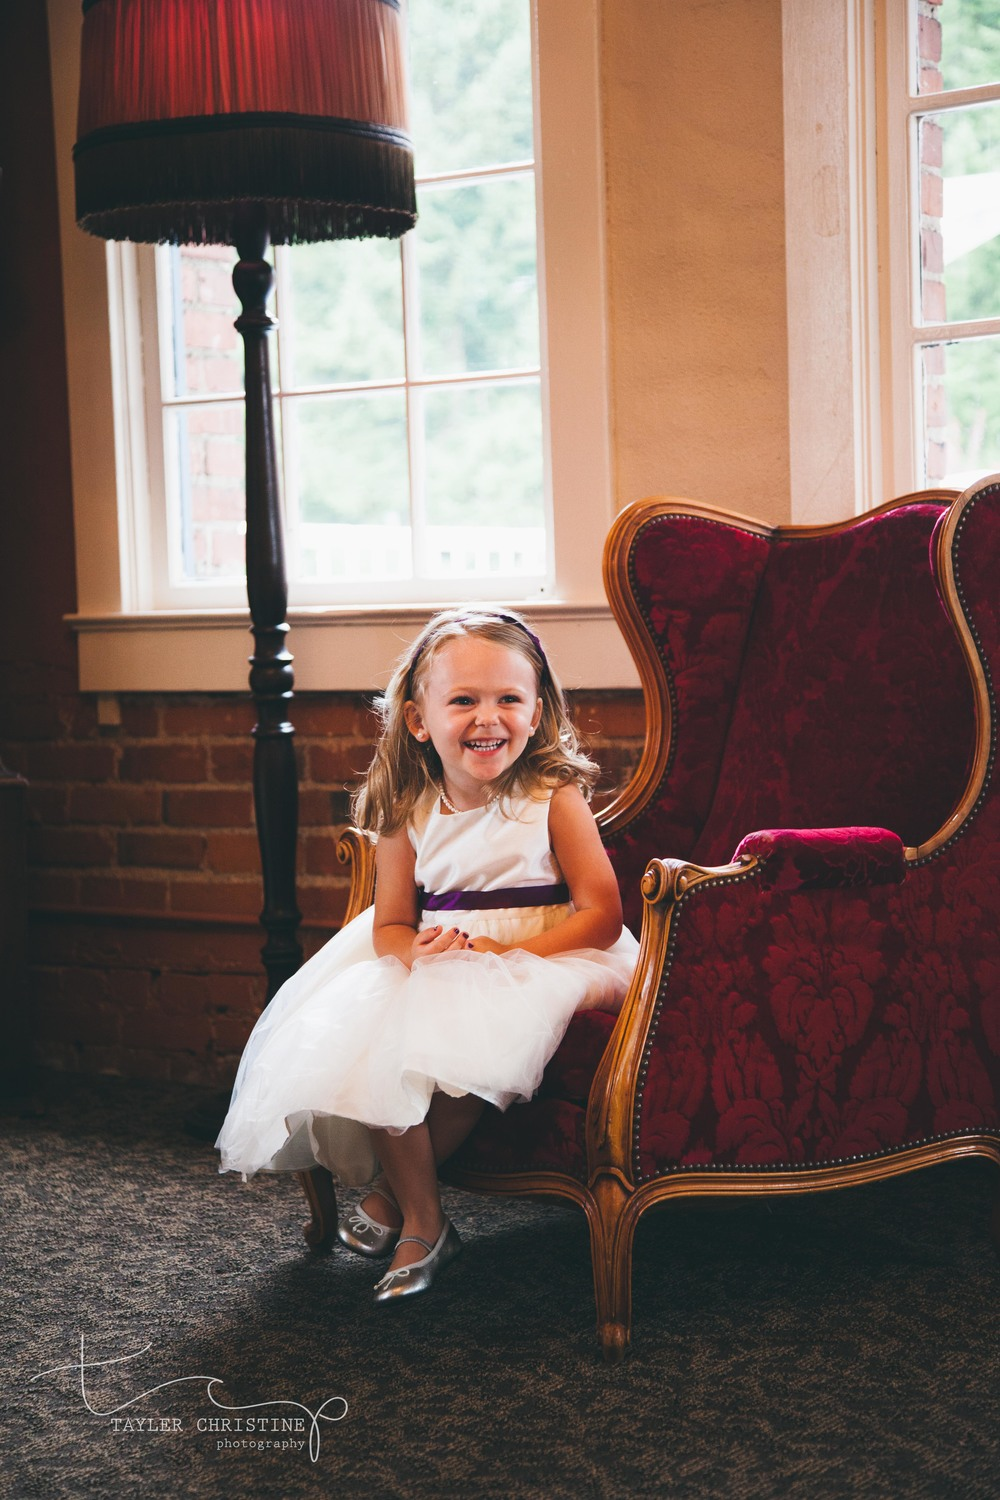 Isn't this flower girl just the most precious thing you have ever seen!?